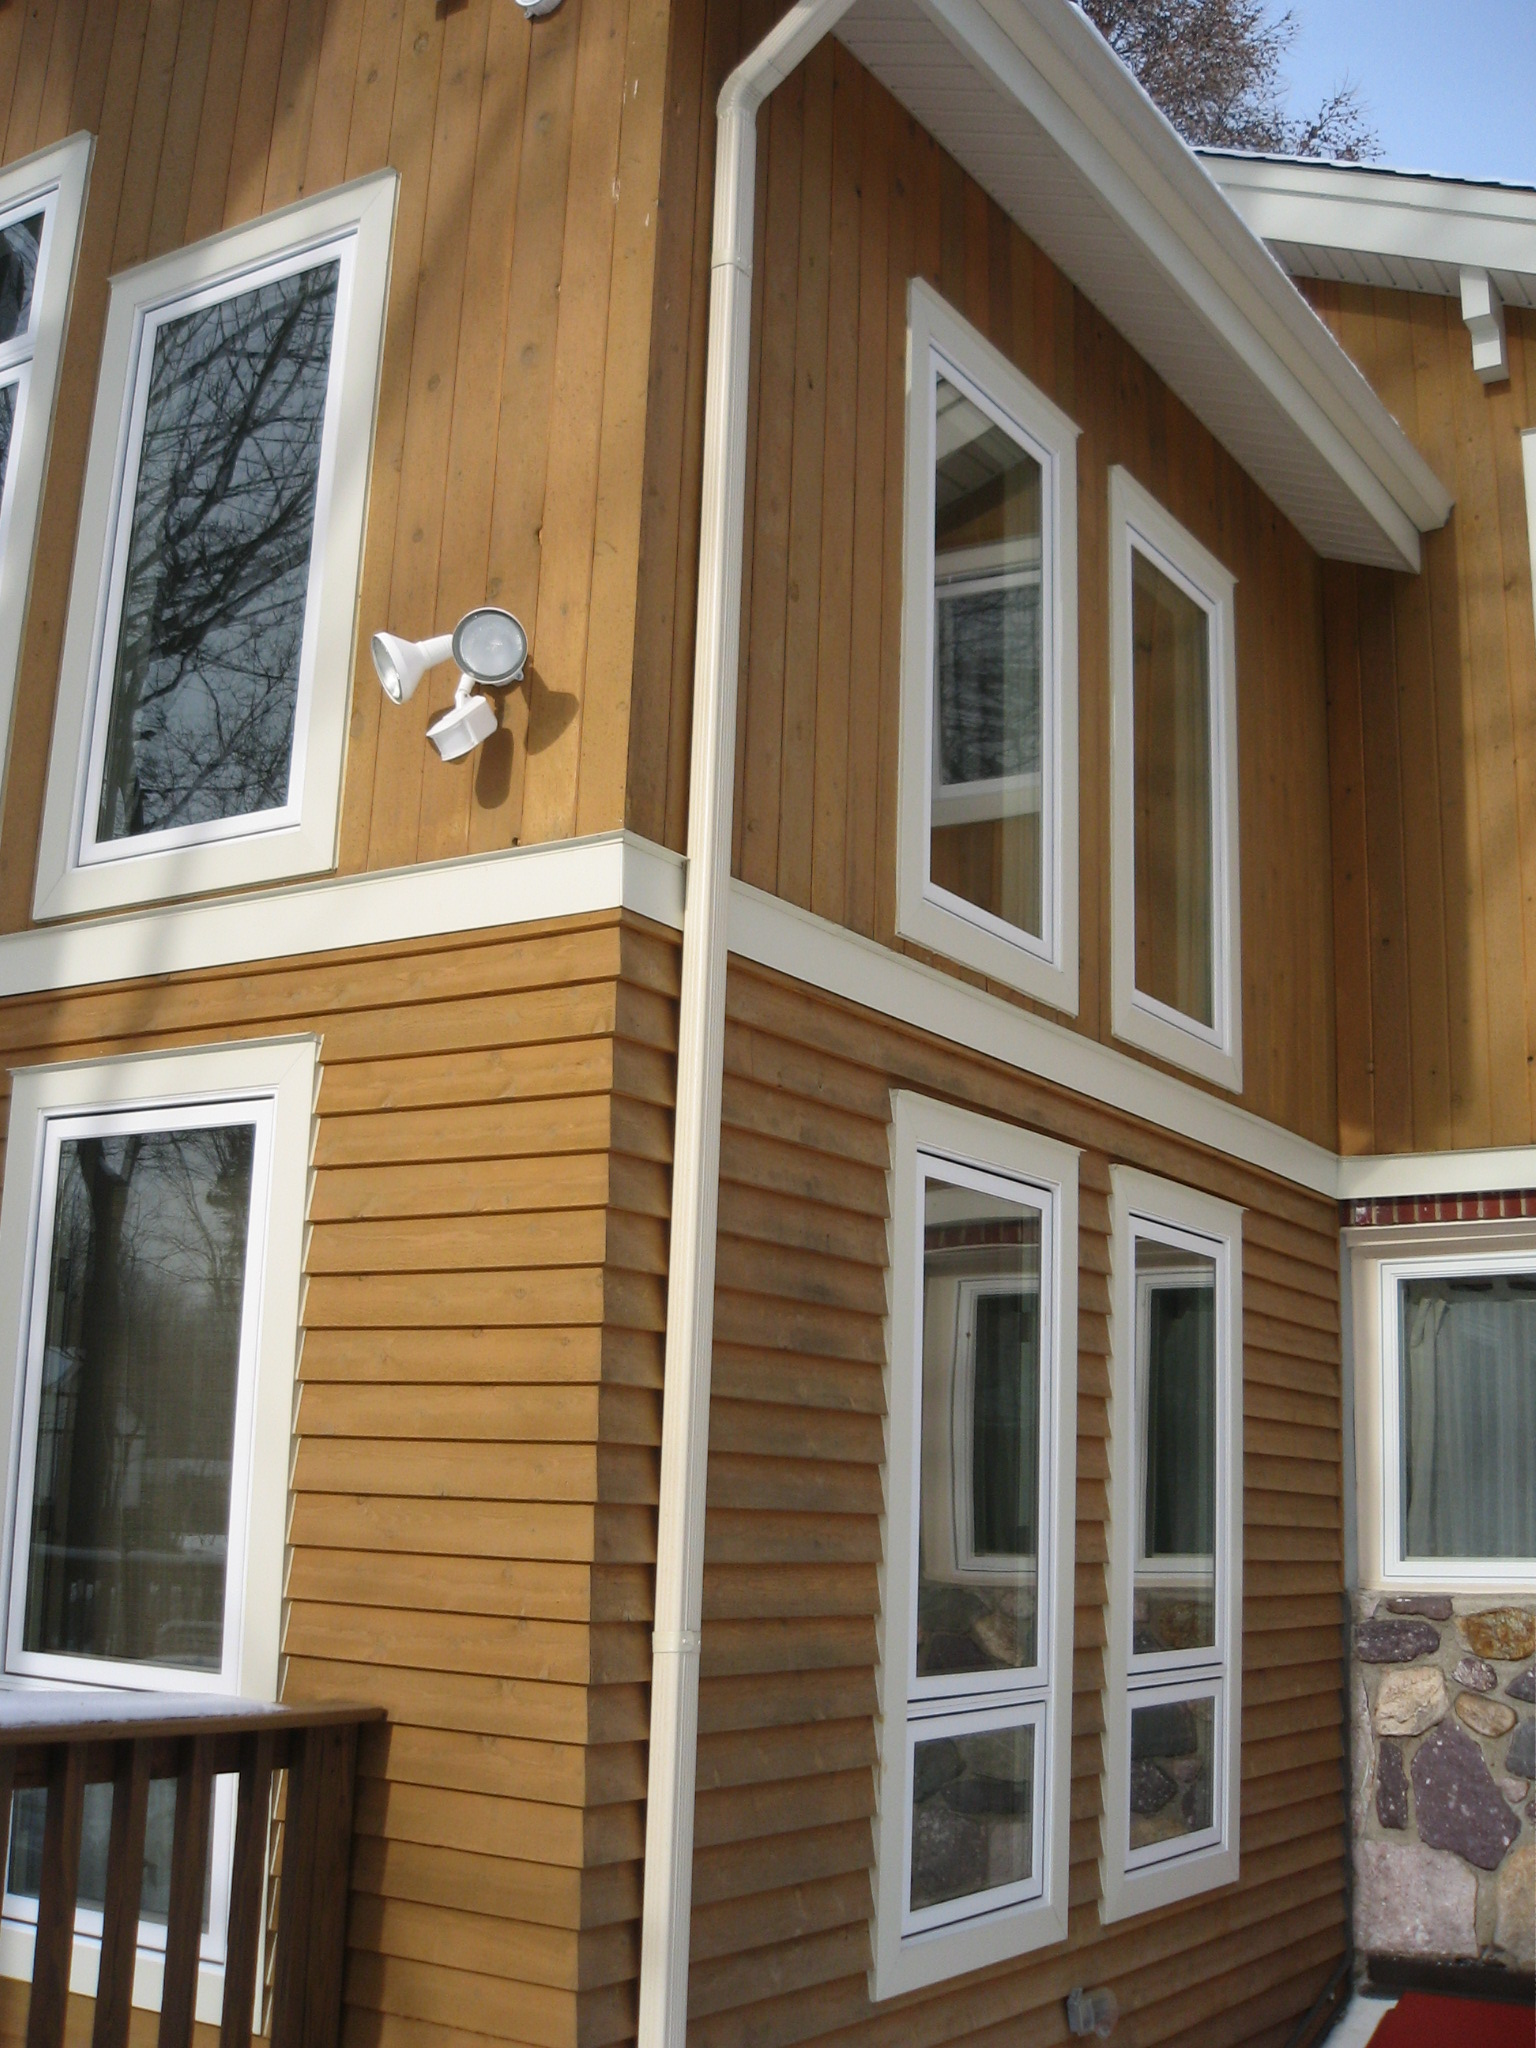 Why Do Guys Love Cement Board Siding? - Page 3 - General Discussion ...